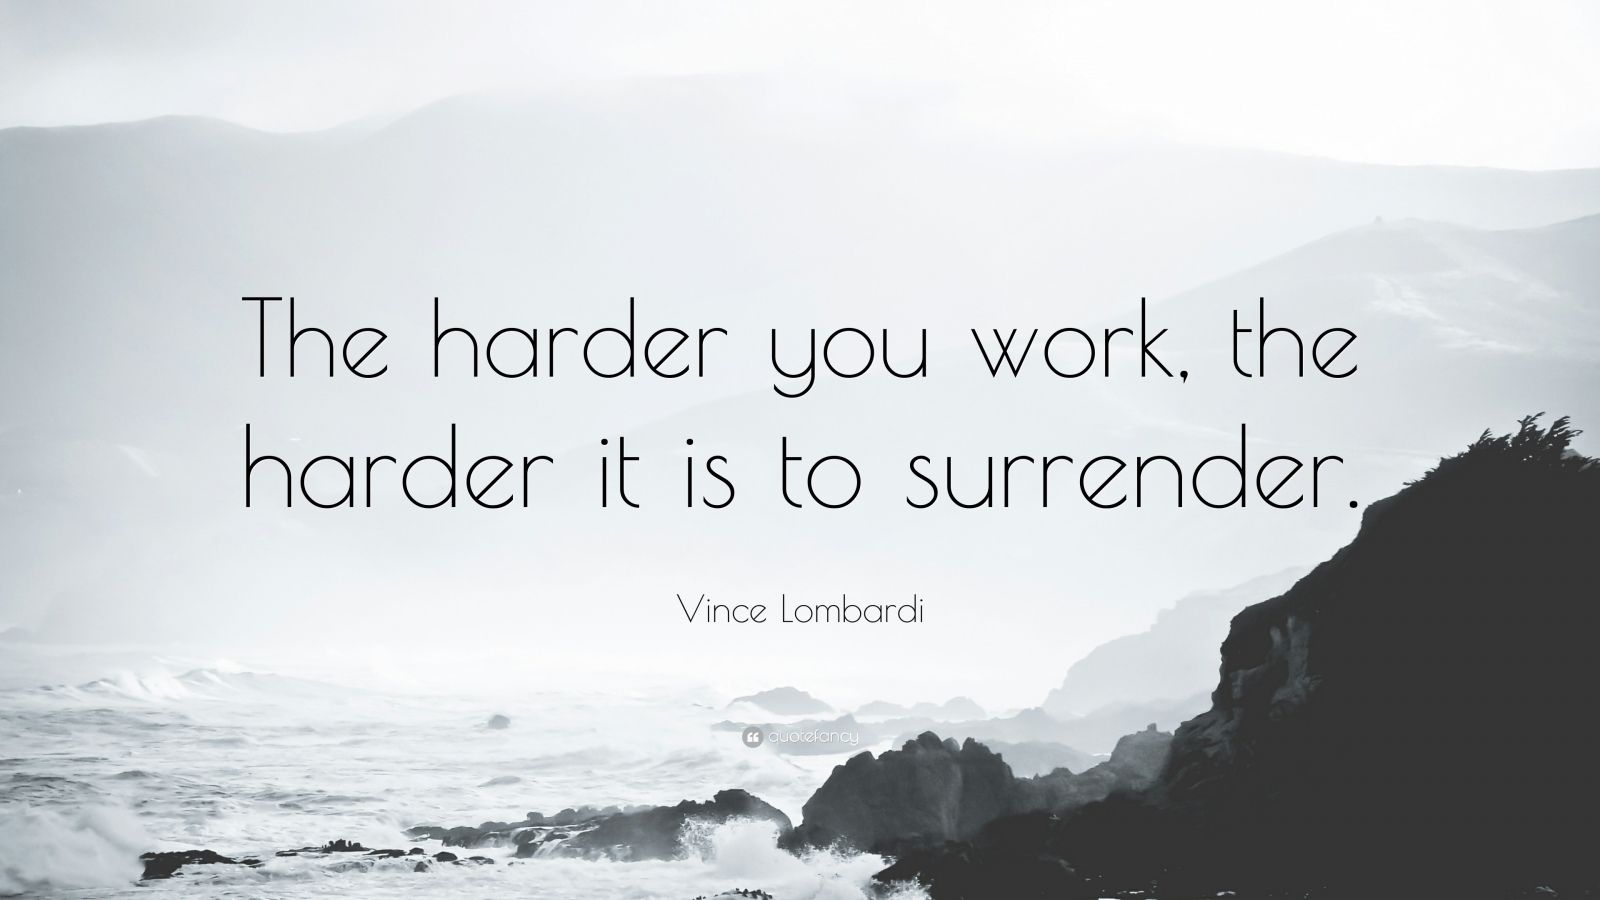 """Vince Lombardi Quote: """"The harder you work, the harder it is to surrender."""""""